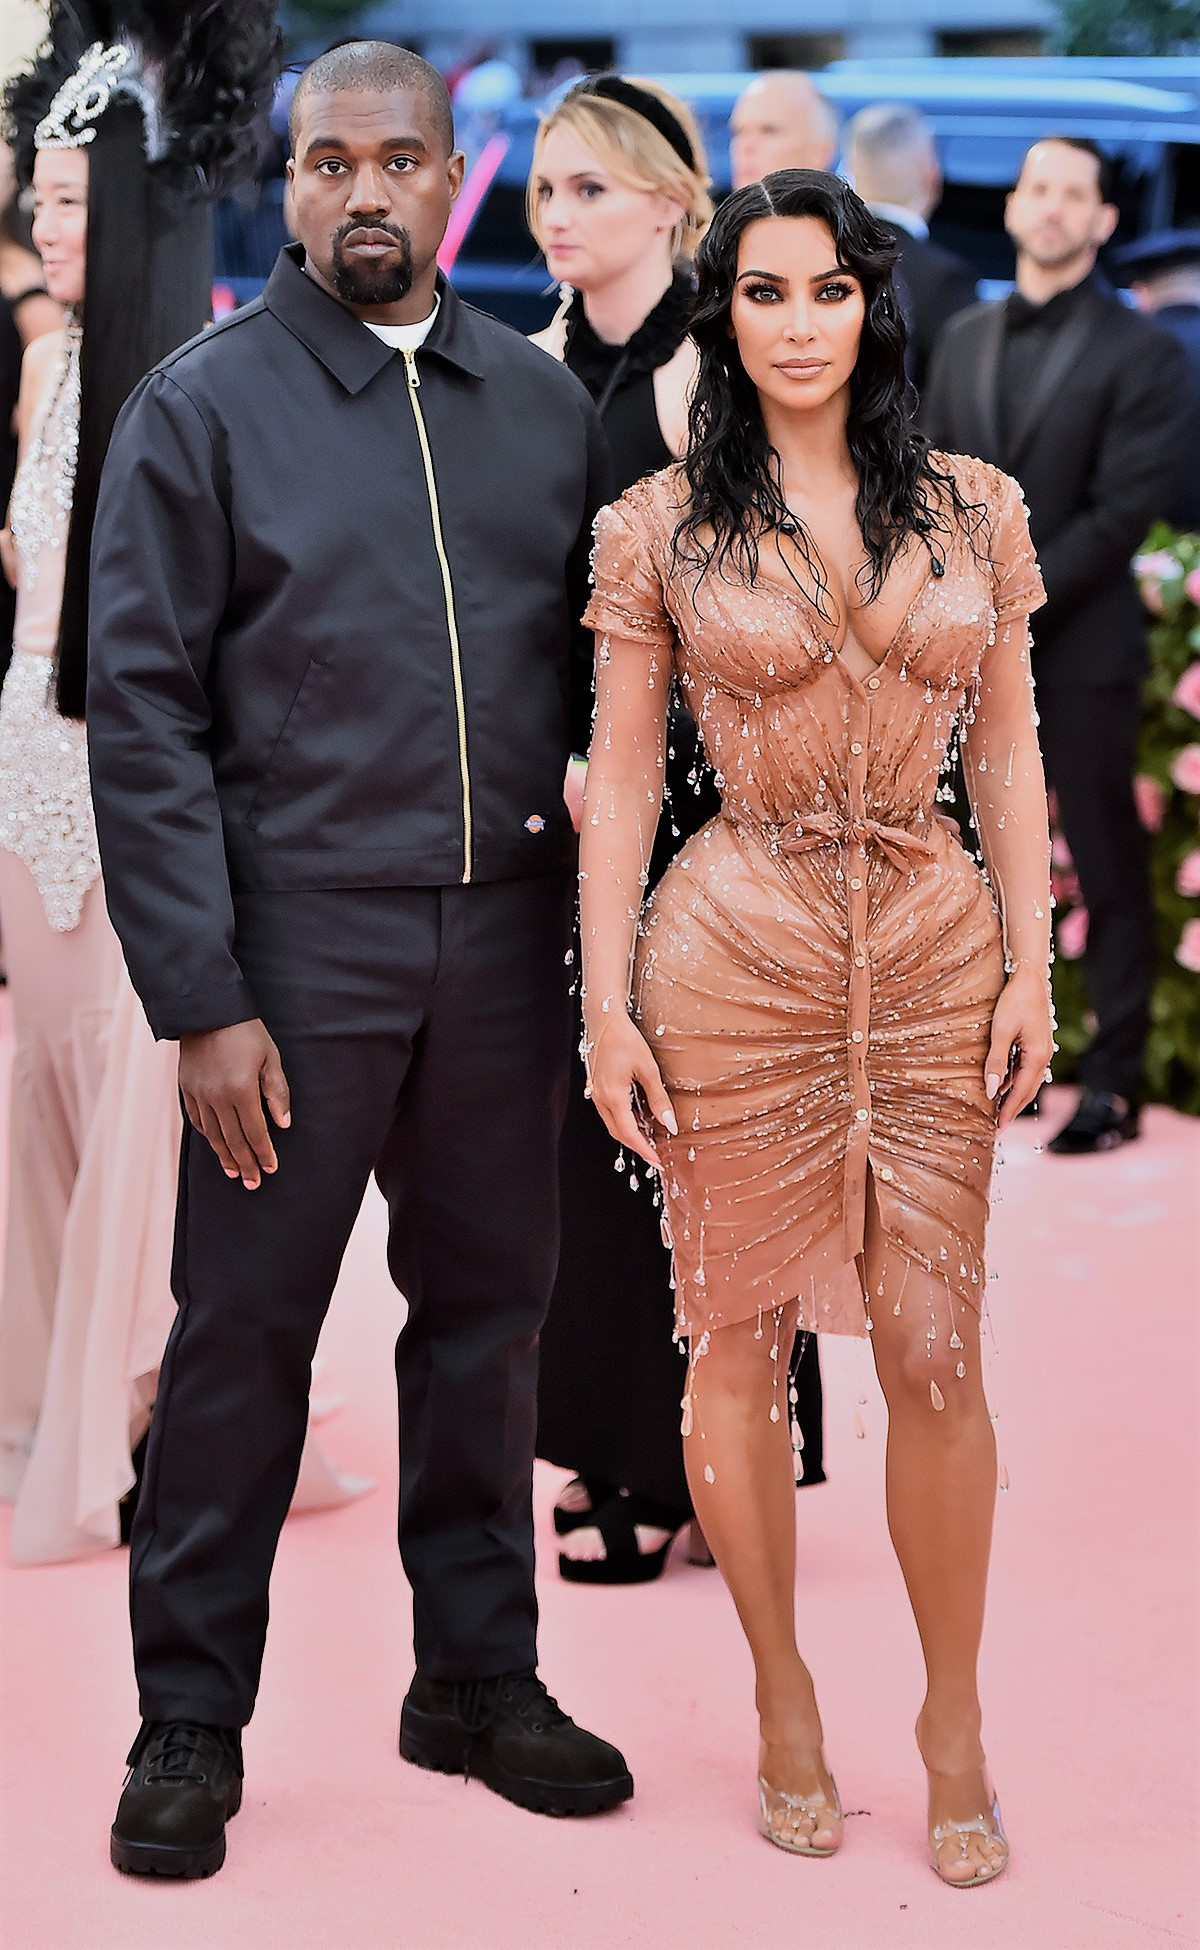 Kanye West and Kim Kardashian at Met Gala 2019